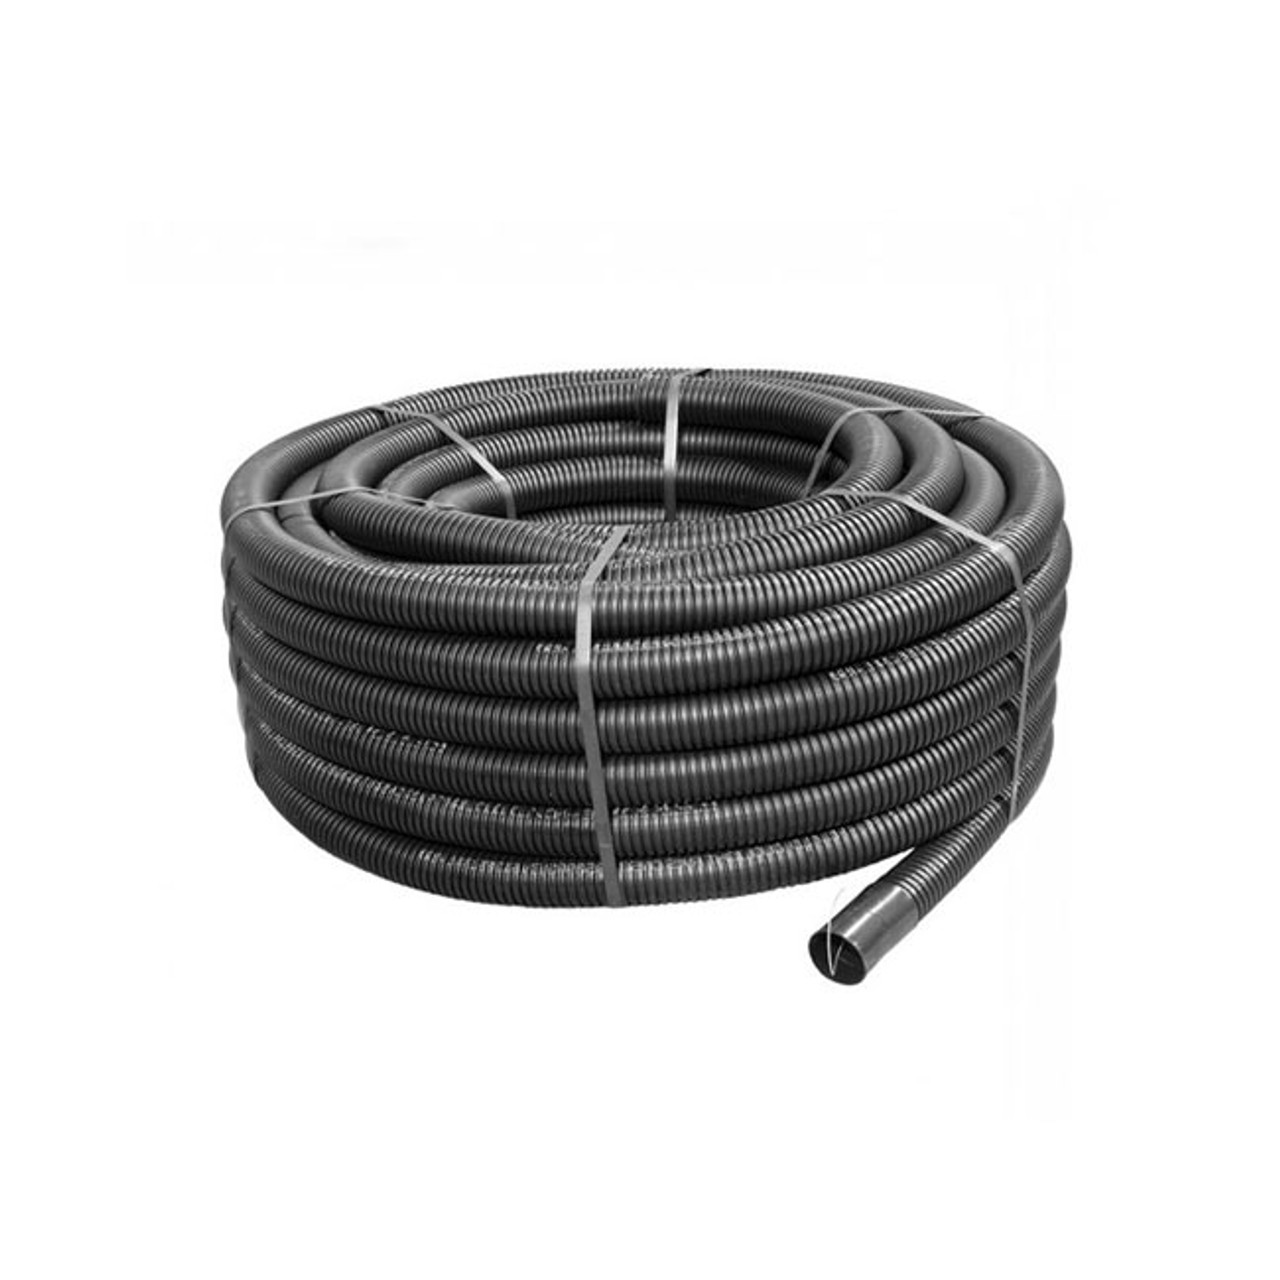 32/40mm class 3 power ducting coil (50m).